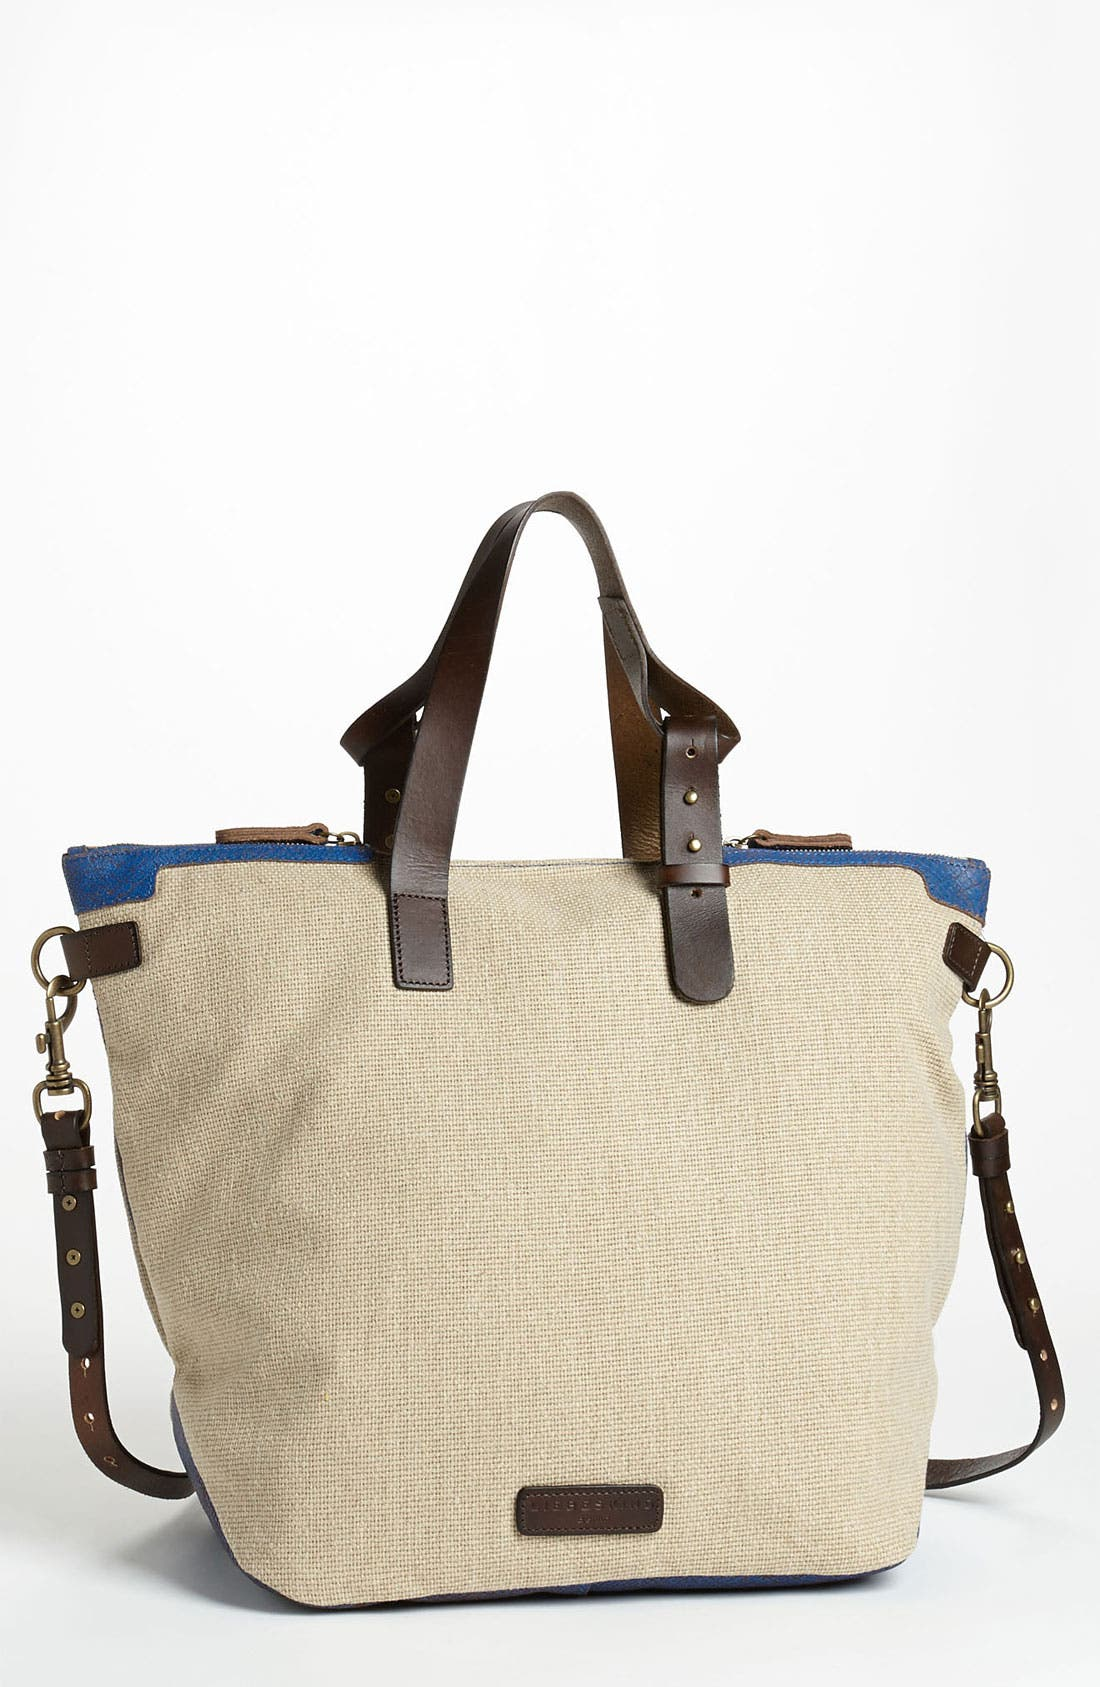 Alternate Image 1 Selected - Liebeskind 'Palermo' Tote